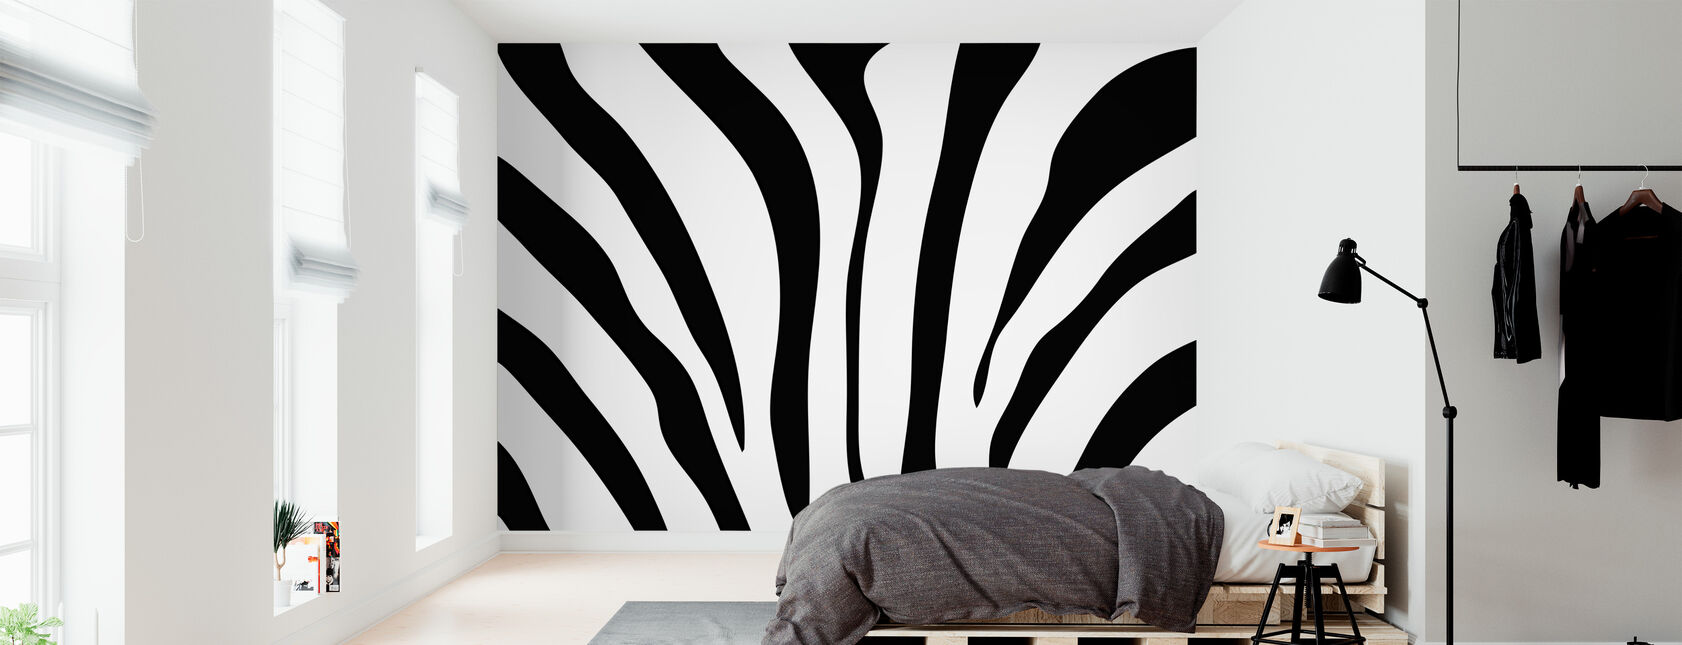 Zebra Texture - Wallpaper - Bedroom